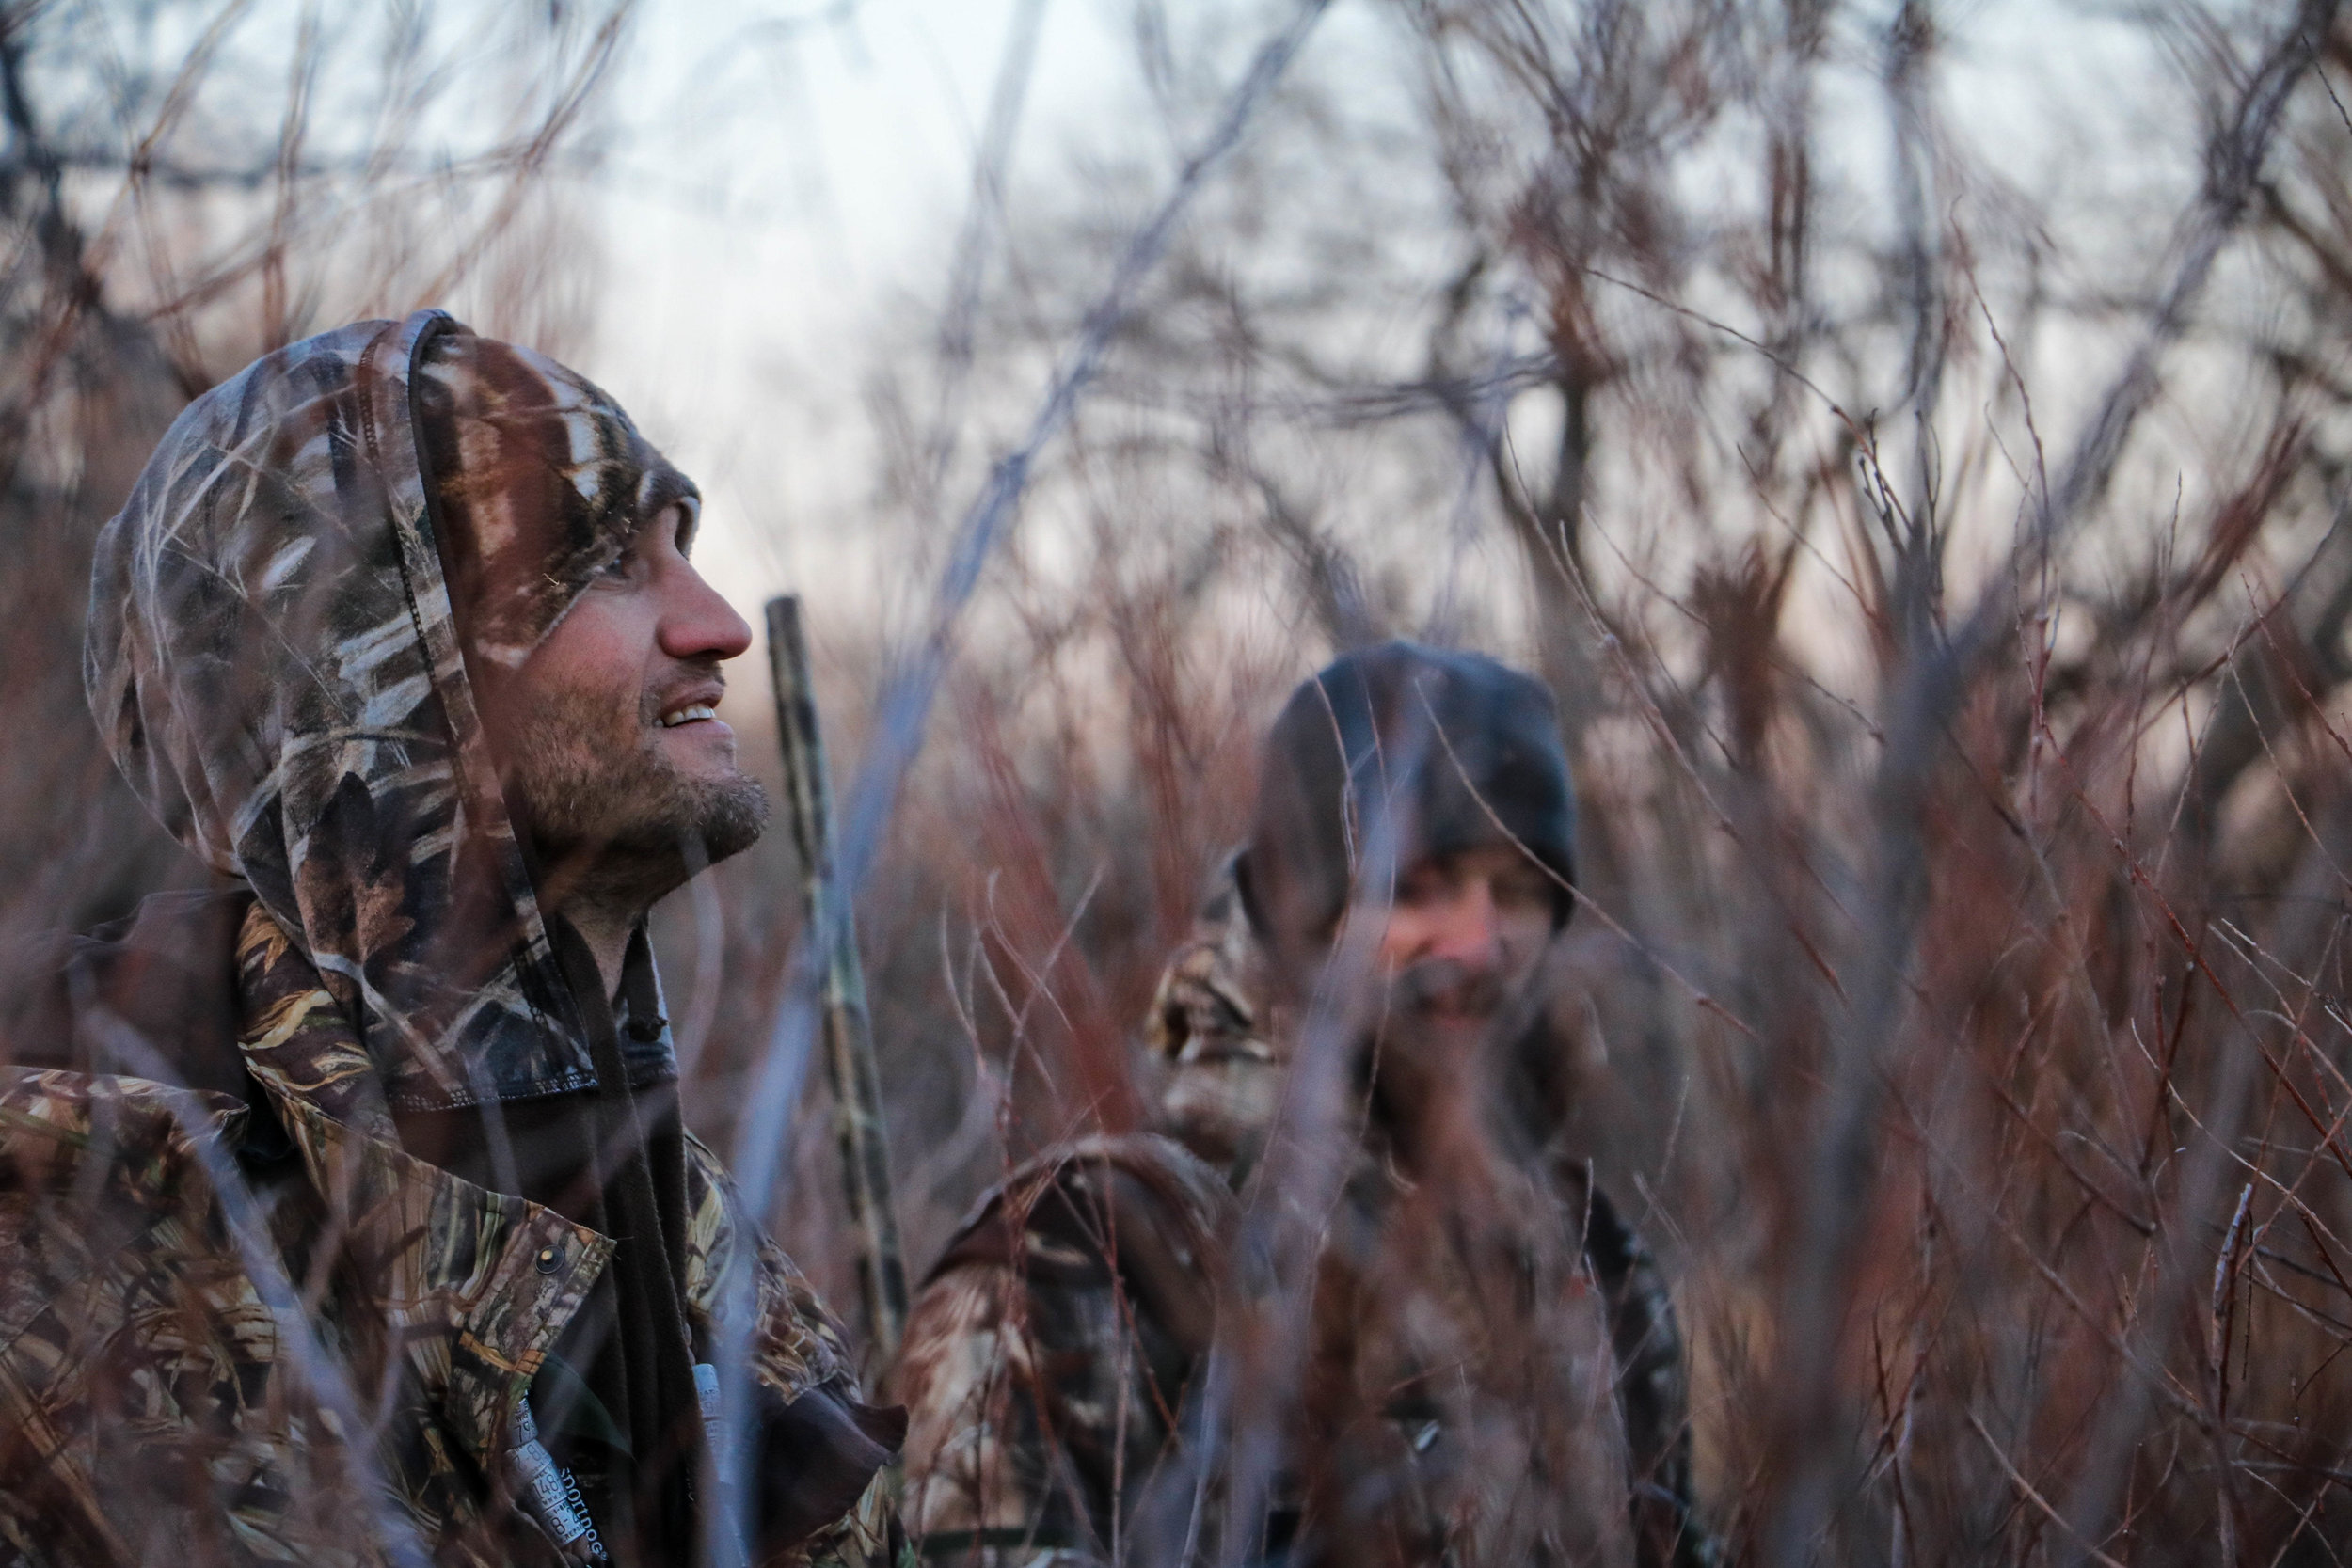 for new hunters - Always wanted to learn how to hunt, but don't know where to start? The Devon Fish & Game Club now offers a hunting mentorship program. We will assign a mentor to you who will guide you through the process of completing your hunter education and will take you out on a scout and a hunt to show you the ropes. All ages welcome, it's never too late to start. If you're interested, send us an email through our contact page and we'll have someone reach out to you.